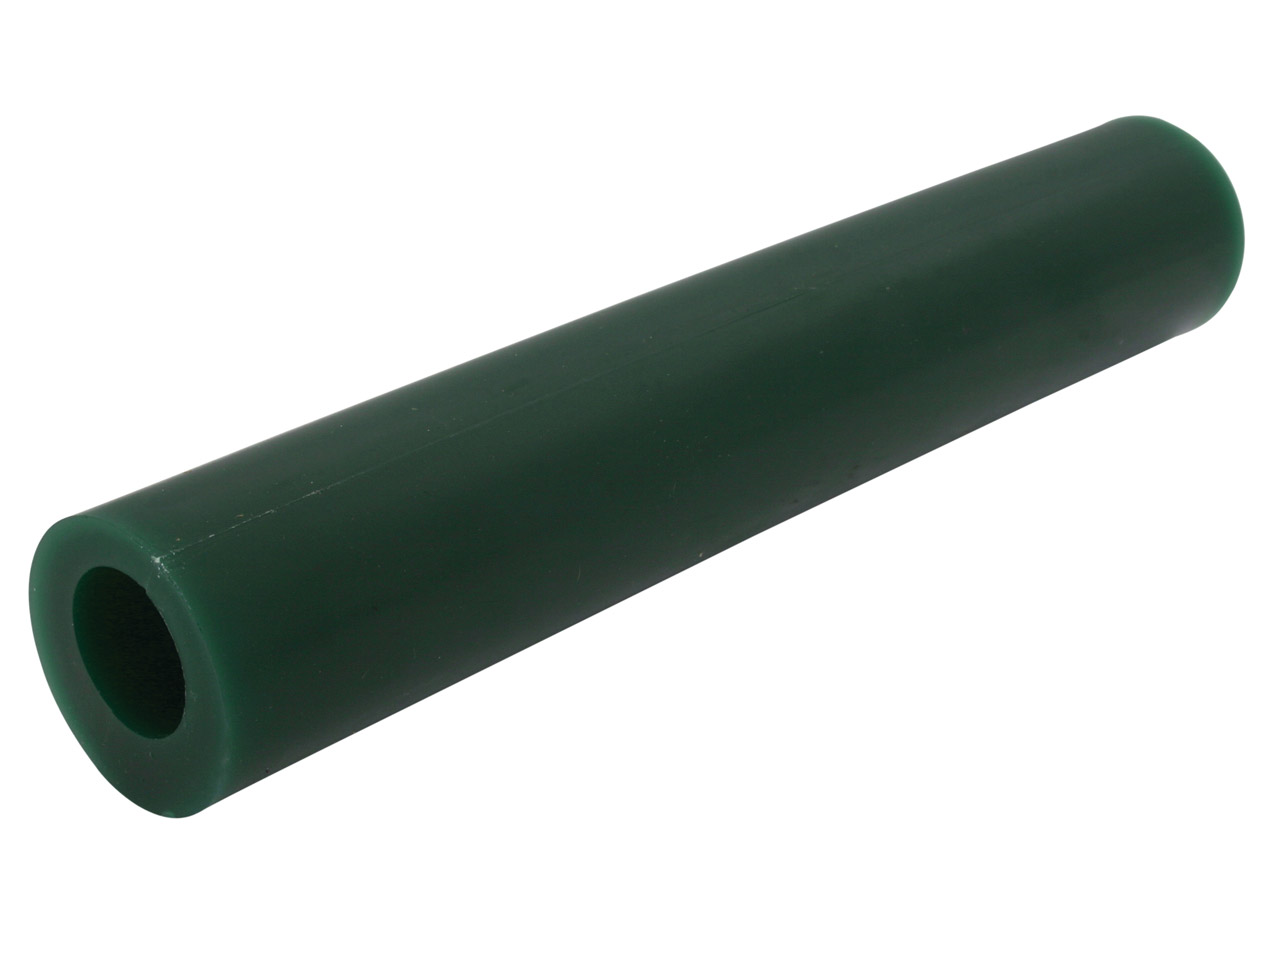 Ferris Round Wax Tube With Off     Centre Hole, Green, 6